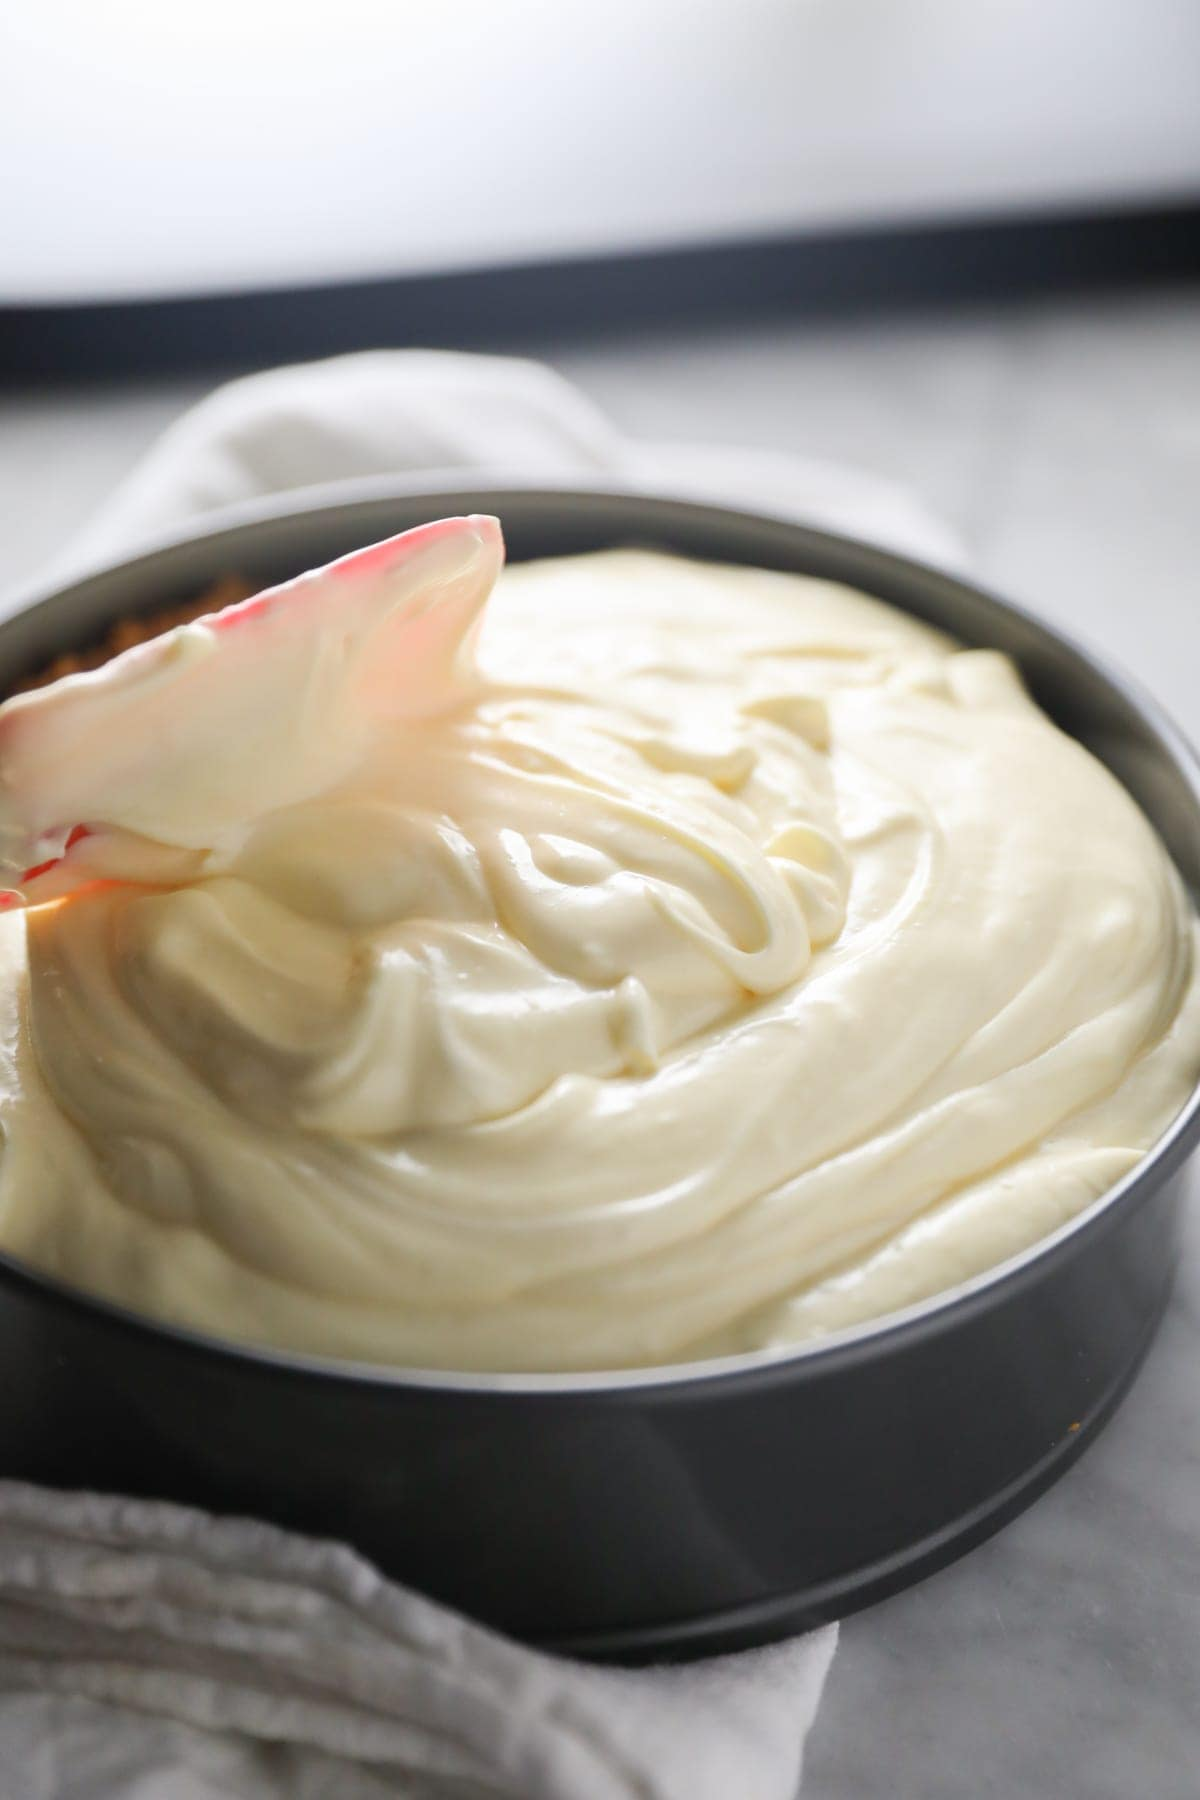 smoothing cheesecake batter into pan